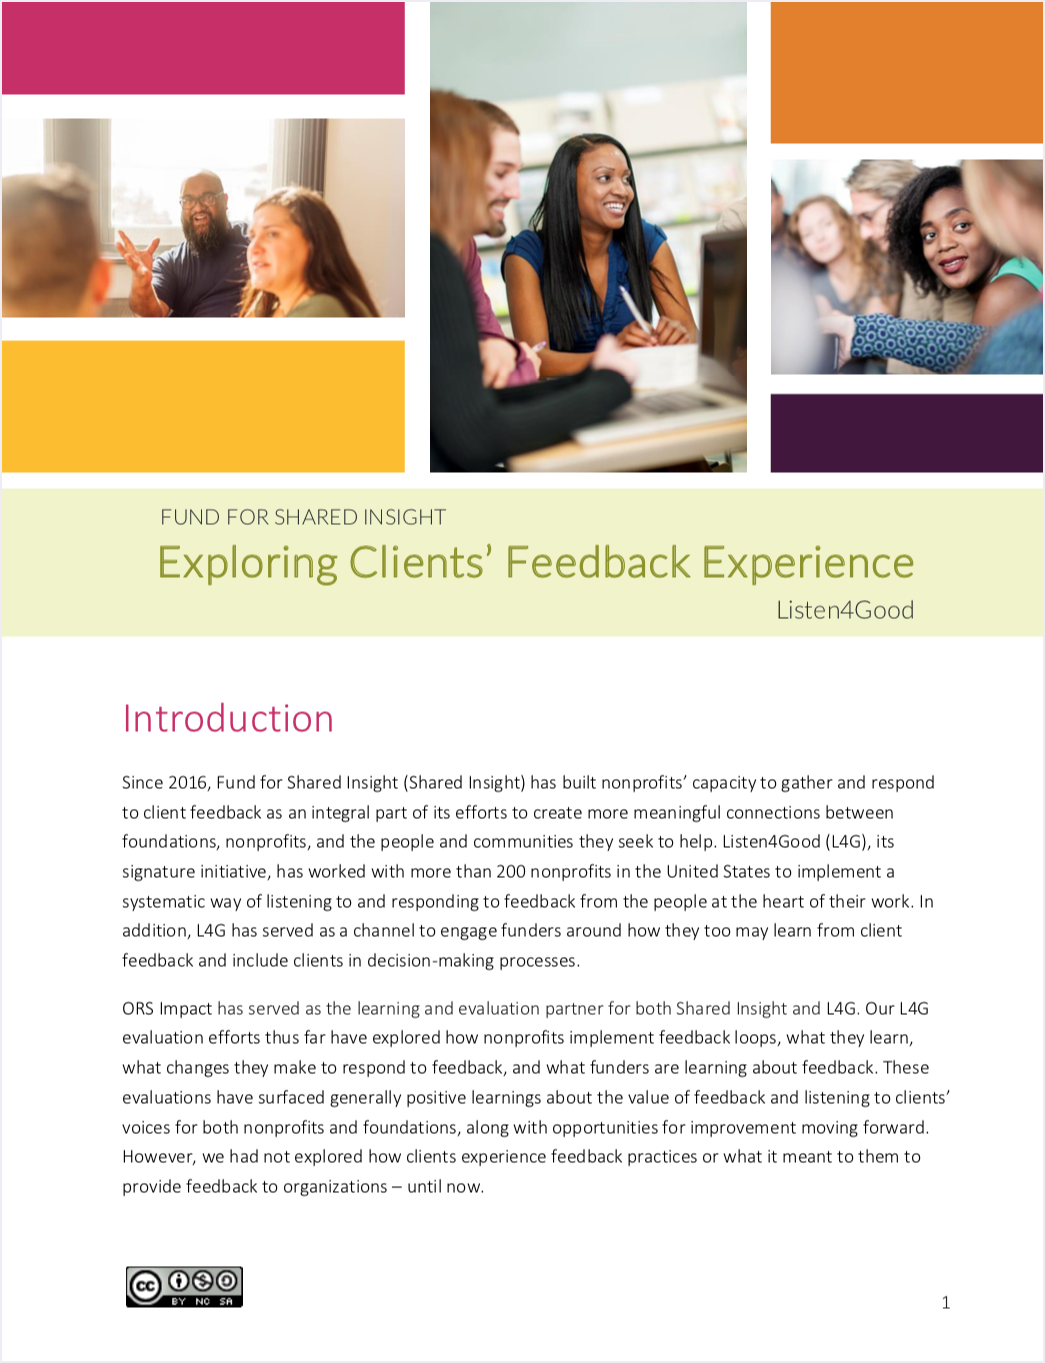 Exploring Clients' Feedback Experience